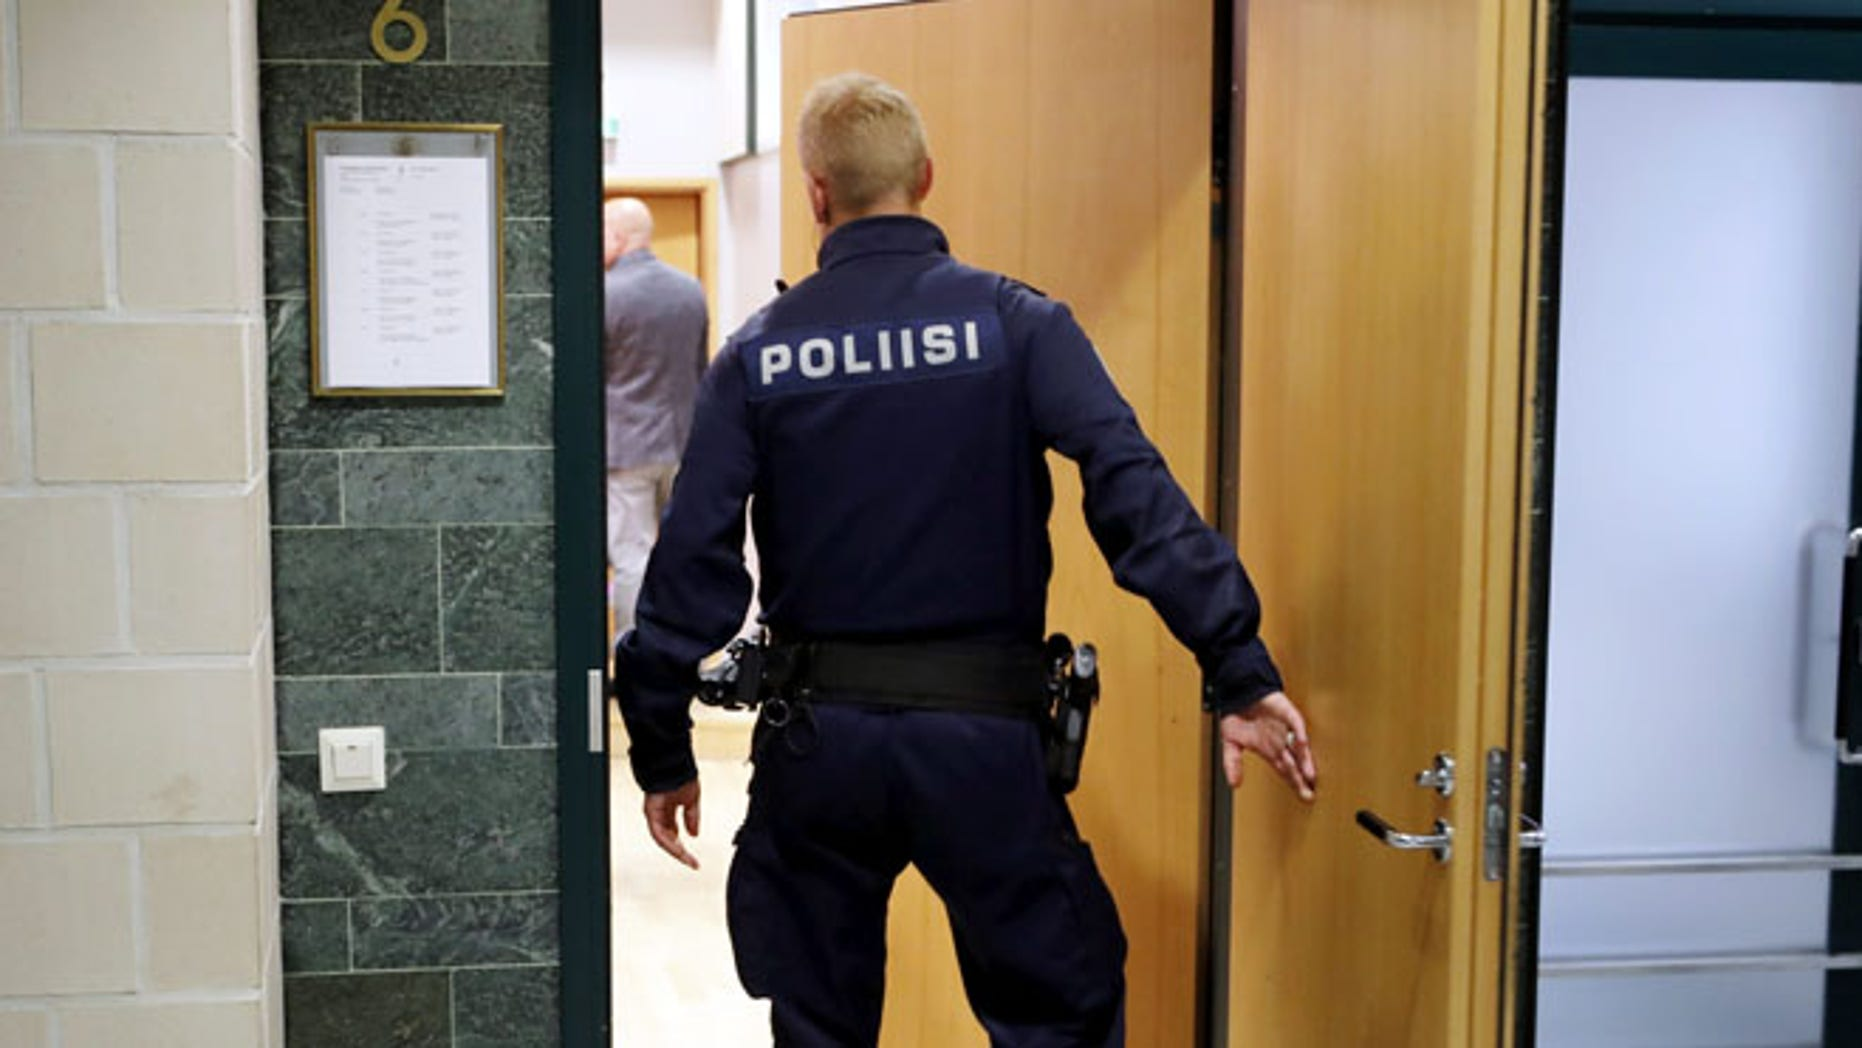 A police officer in Pirkanmaa district court in Tampere Finland, on Tuesday, July 5 2016. Finnish police have released two members of Cuba's national men's volleyball team but are holding six others on suspicion of aggravated rape, an investigator said Monday. (Kalle Parkkinen/Lehtikuva via AP)